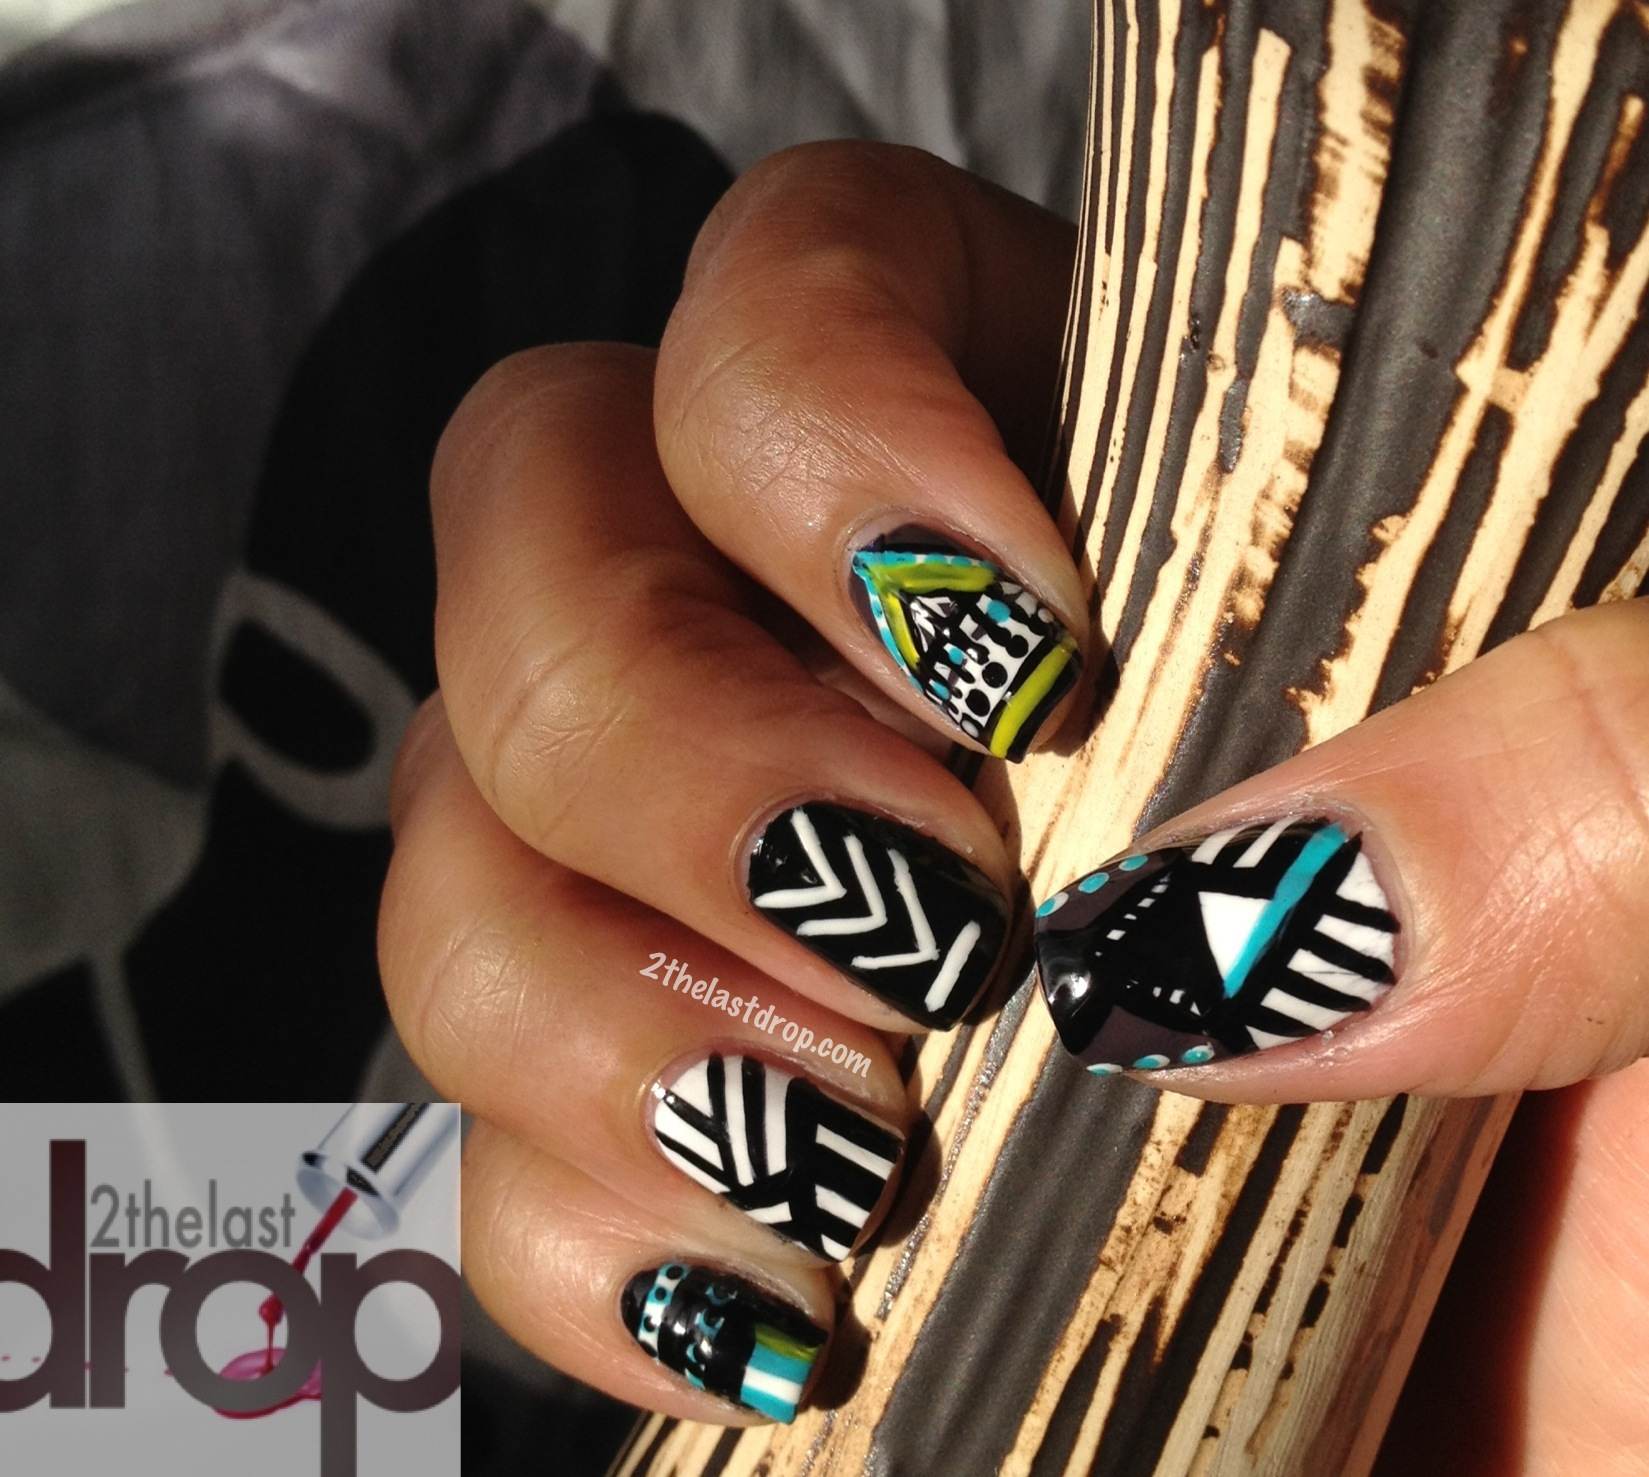 Tribal Nails Day 16 Of 31 Day Nail Challenge 2thelastdrop